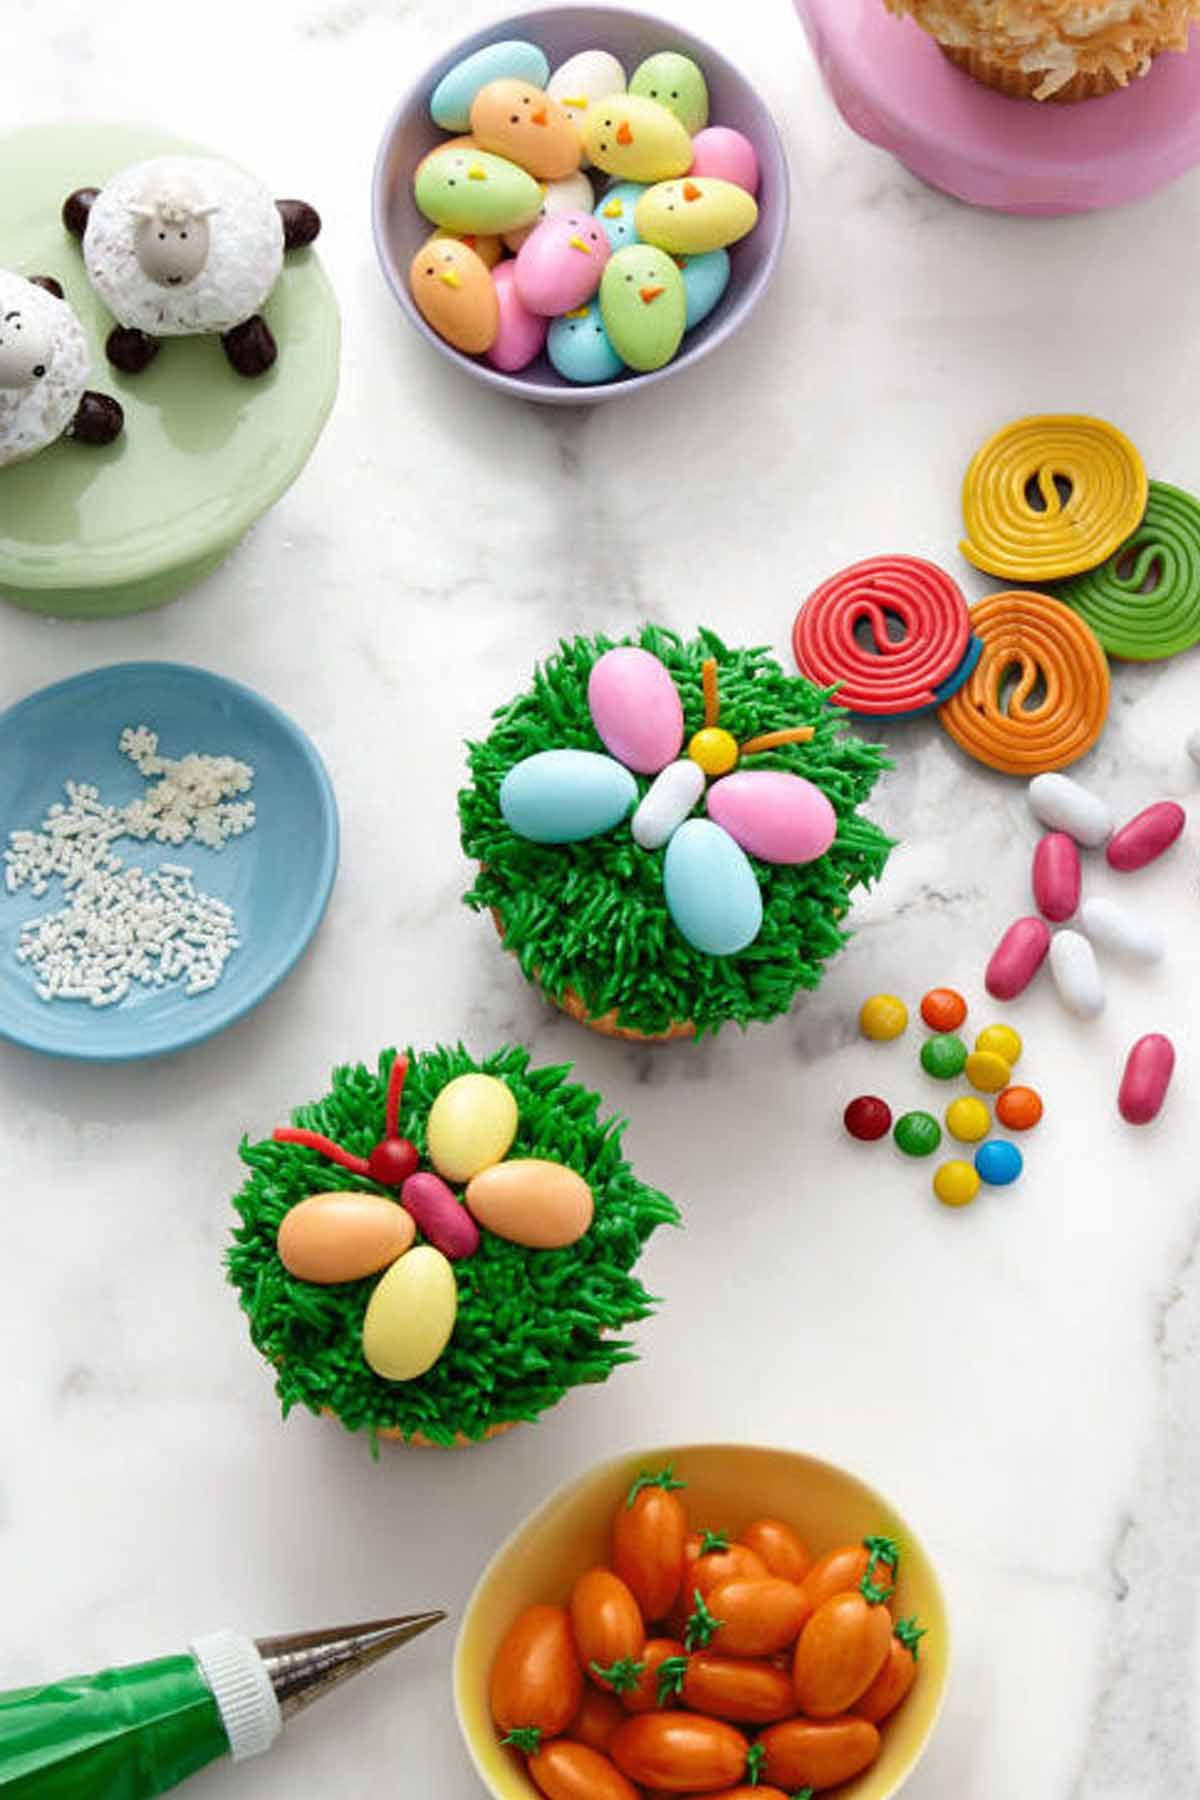 46 easy easter recipes - easter food ideas - womansday